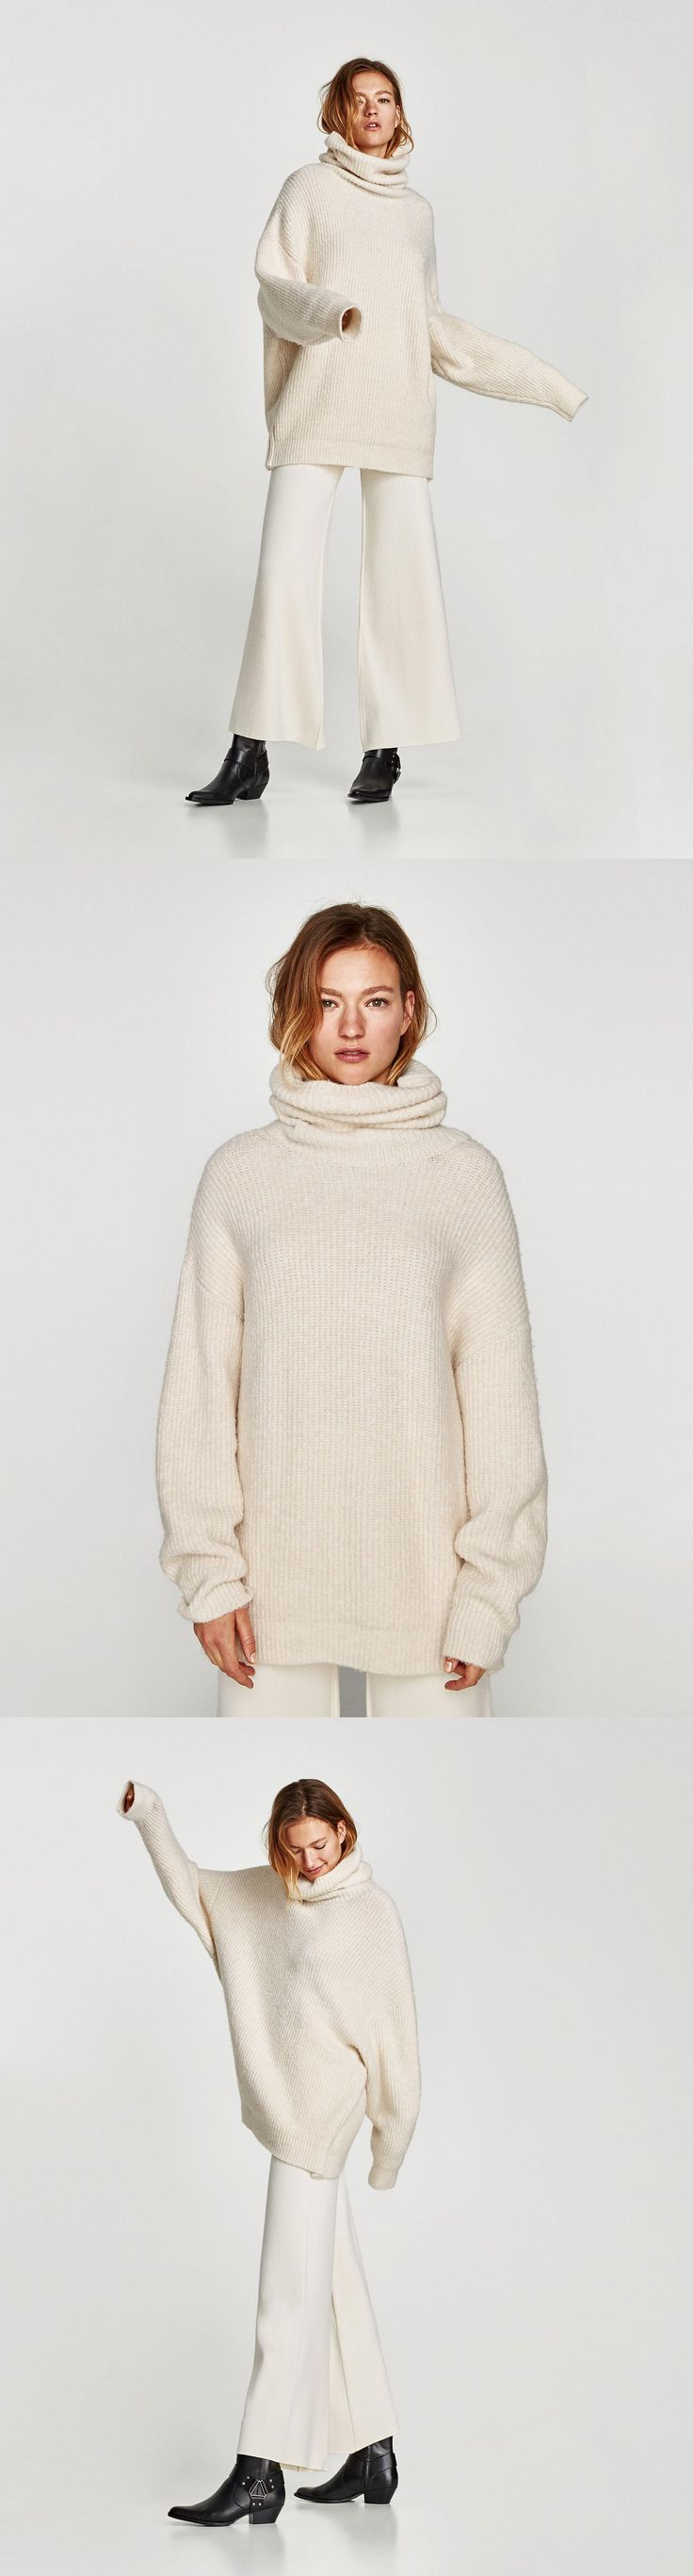 Oversized Roll Neck Sweater // 49.90 USD // Zara // Oversized sweater with ample, roll neck and long sleeves. HEIGHT OF MODEL: 178 cm. / 5′ 10″